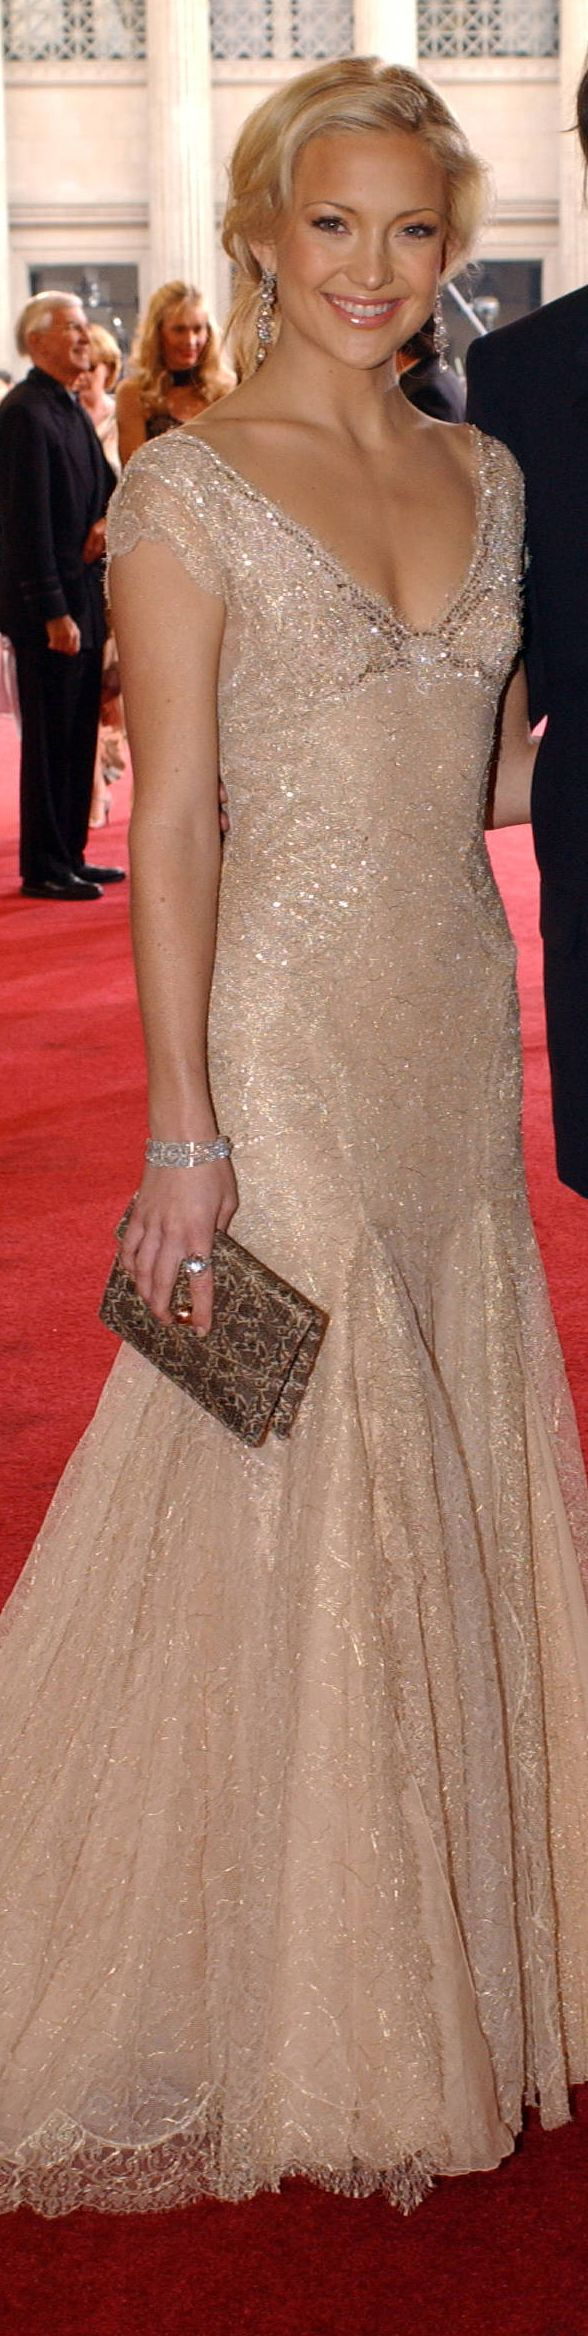 Kate hudson red carpet long dress nude glitter formal fashion